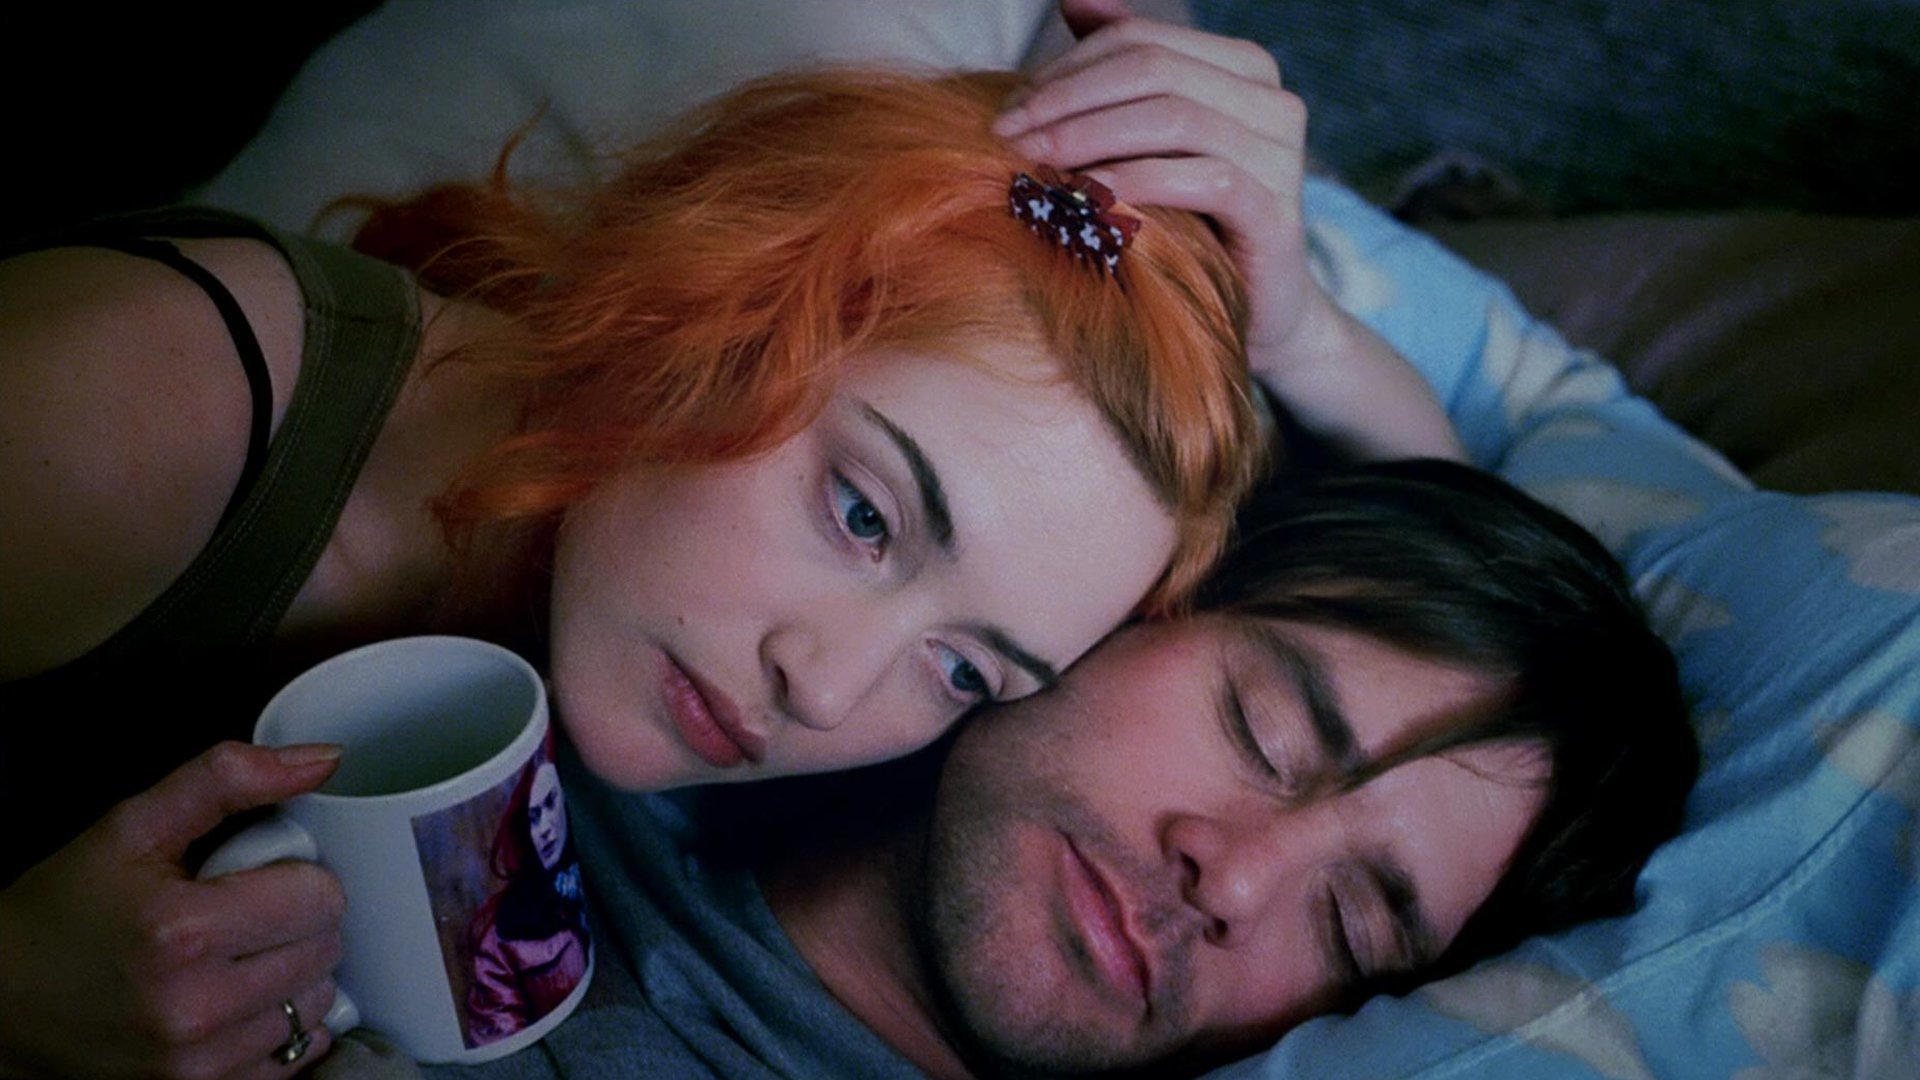 شرح فيلم Eternal Sunshine كيت وينسلت وجيم كاري